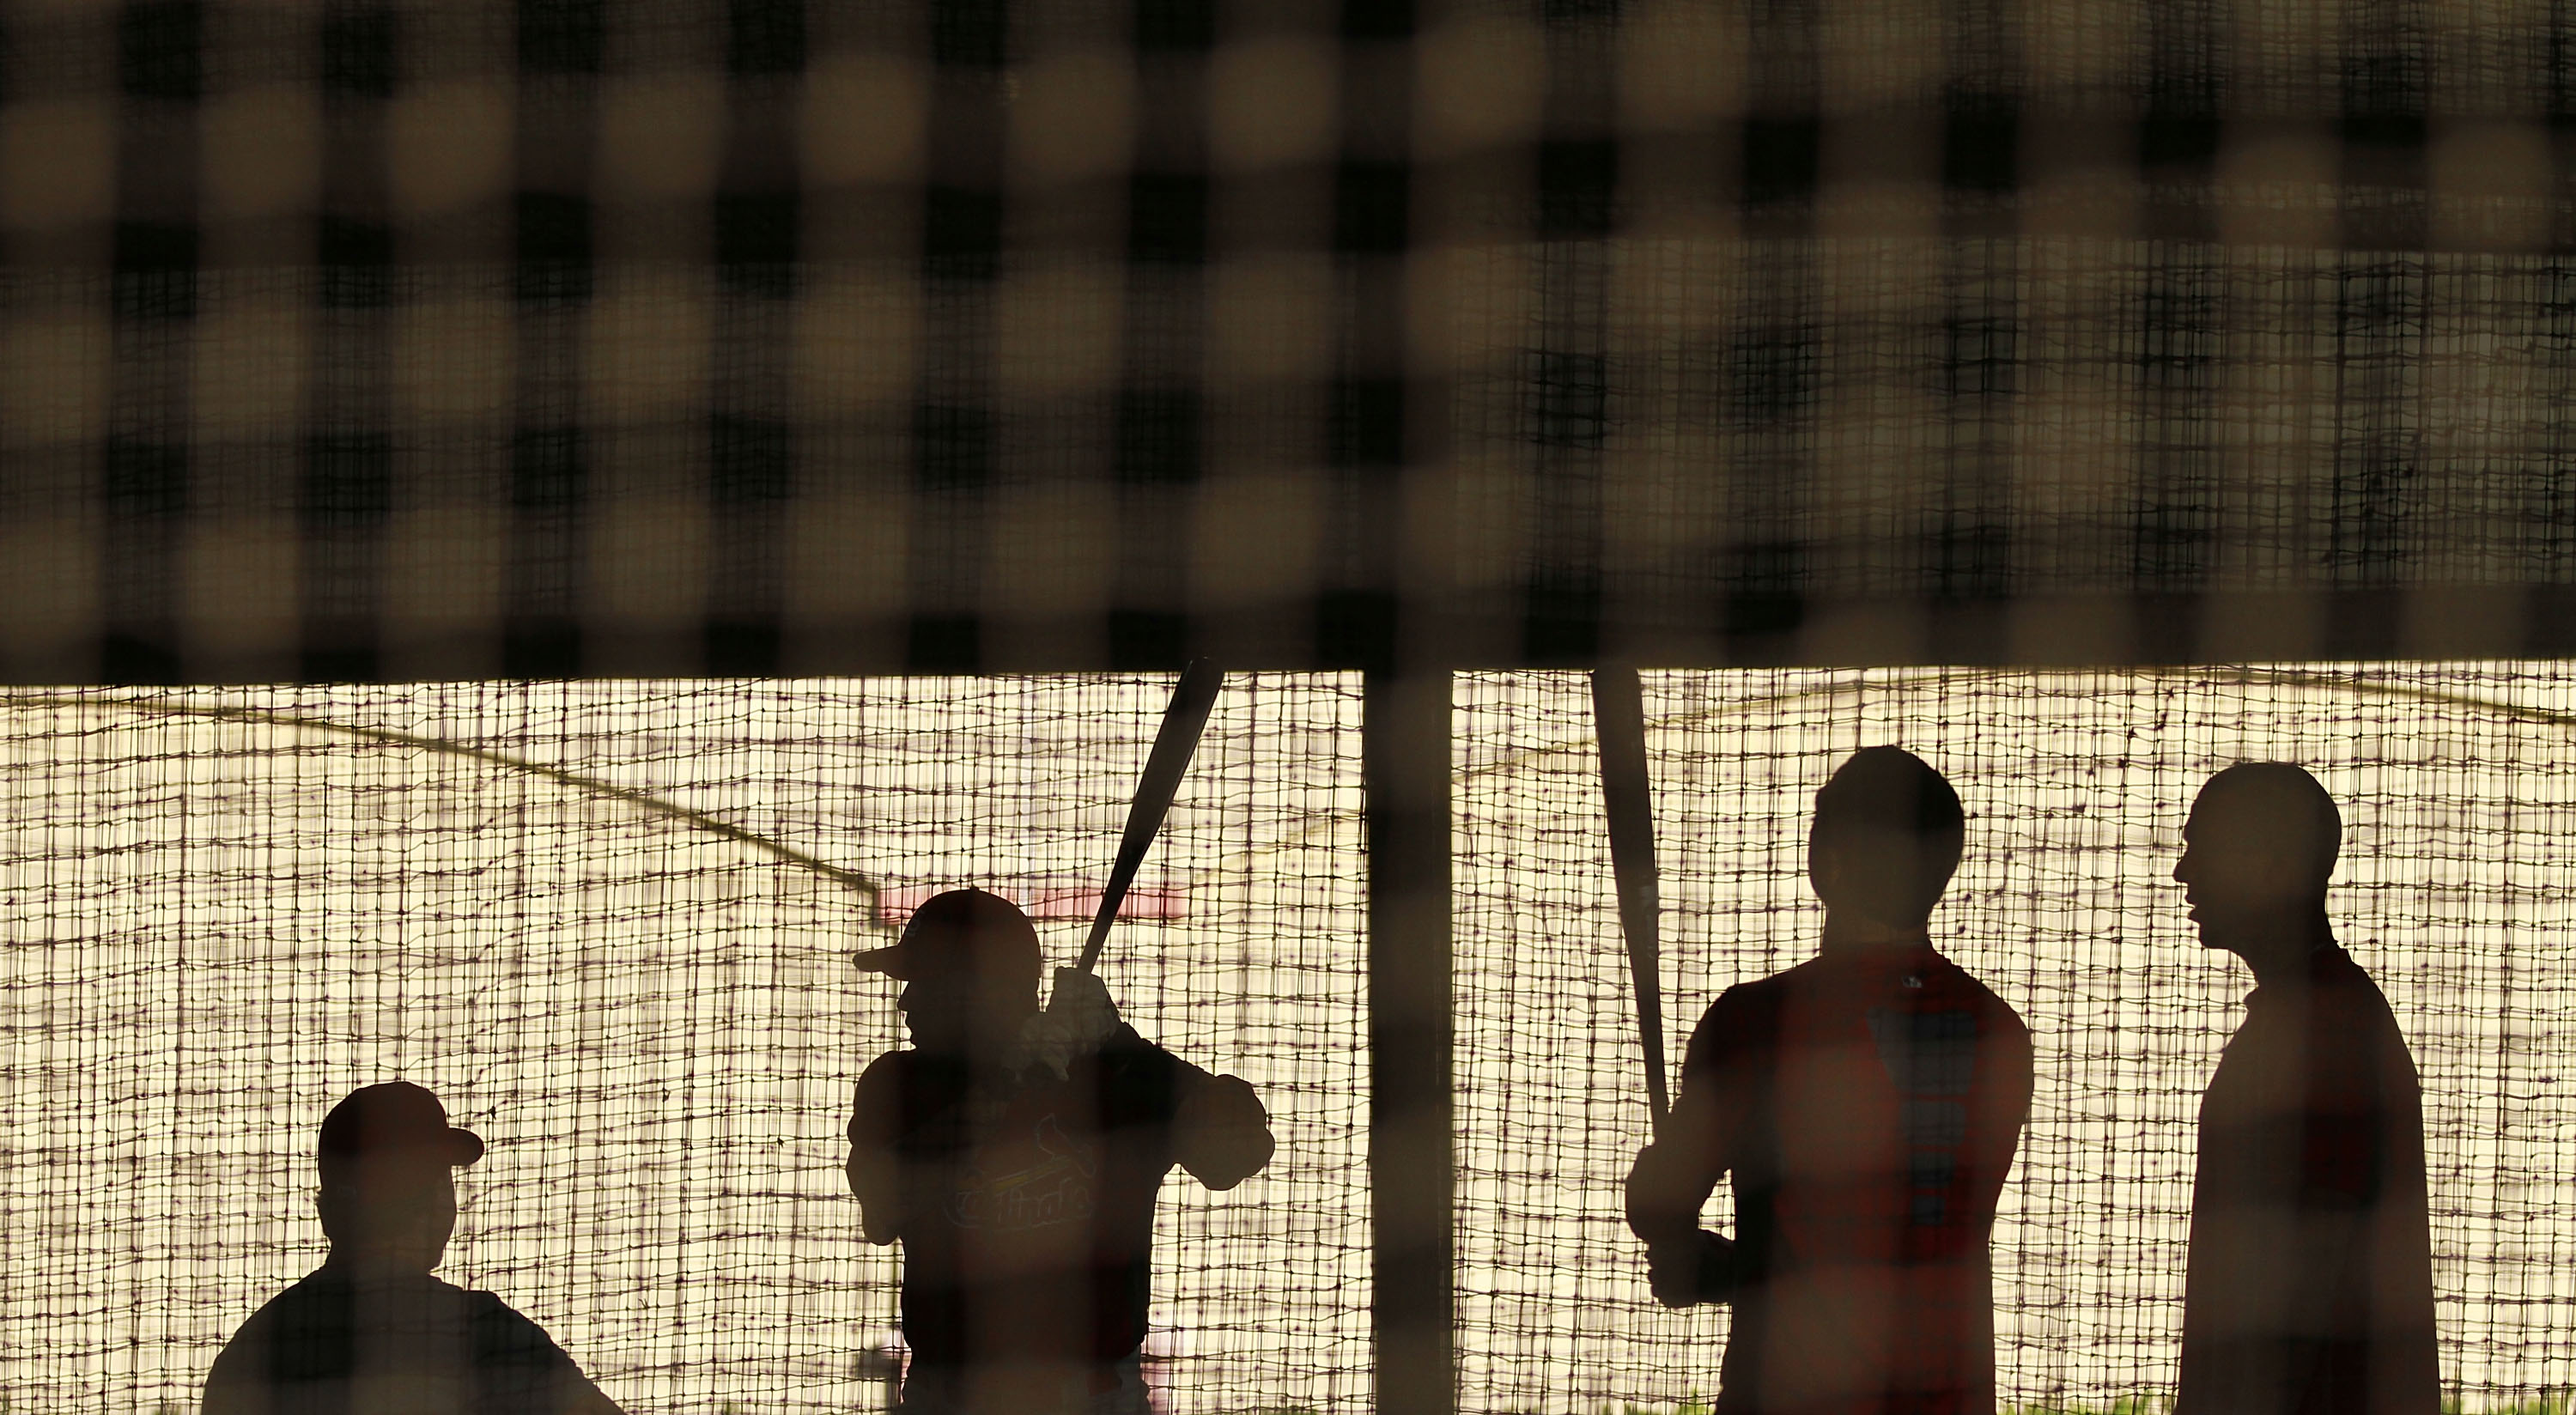 JUPITER, FL - FEBRUARY 16:  St. Louis Cardinals players take batting practice at Roger Dean Stadium on February 16, 2011 in Jupiter, Florida.  (Photo by Marc Serota/Getty Images)